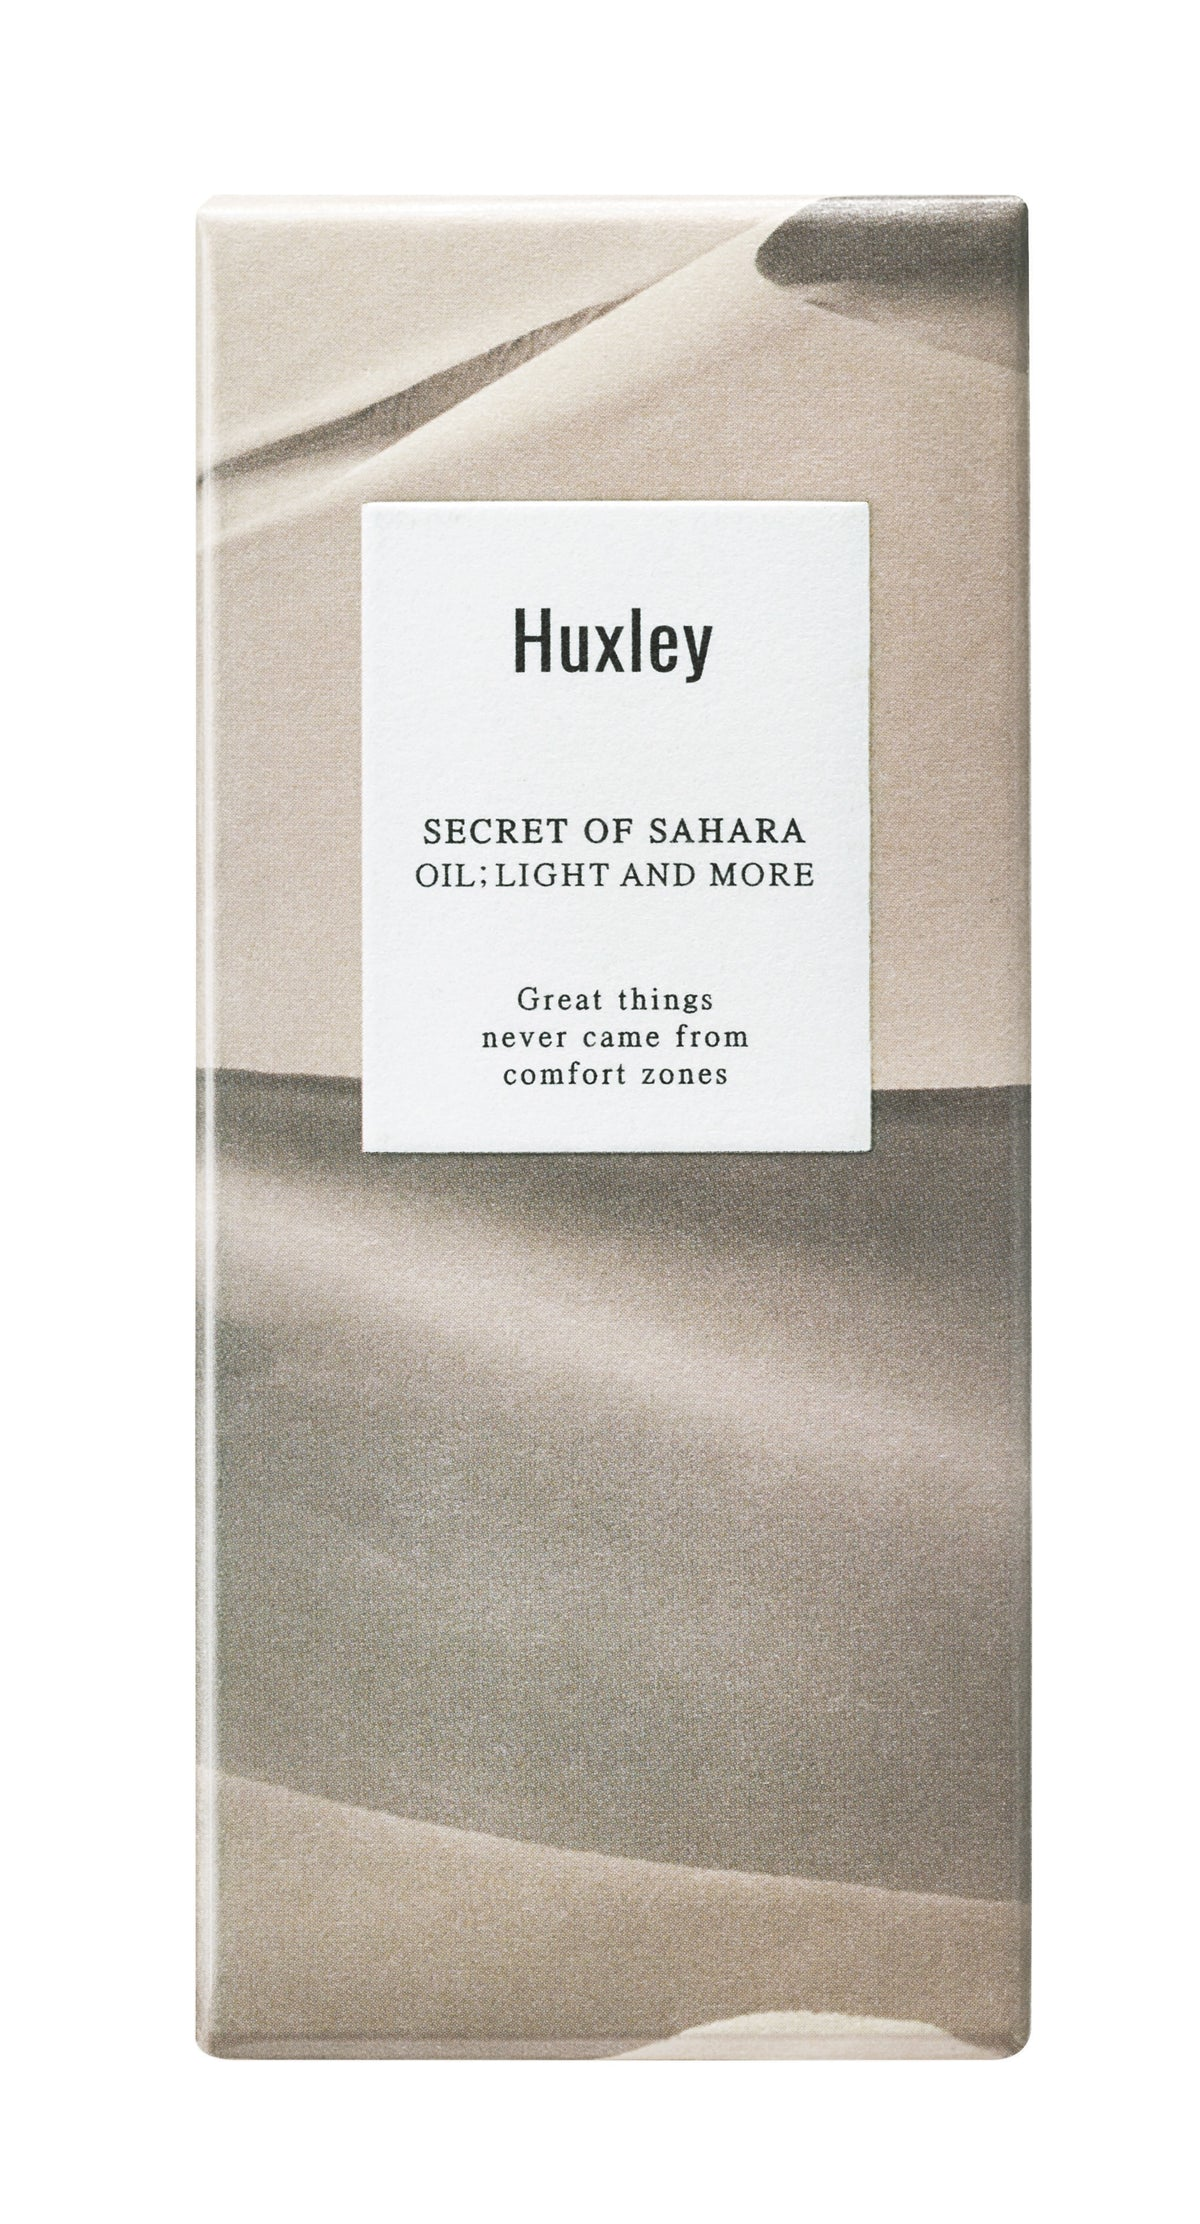 Huxley Oil:Light and More packaging